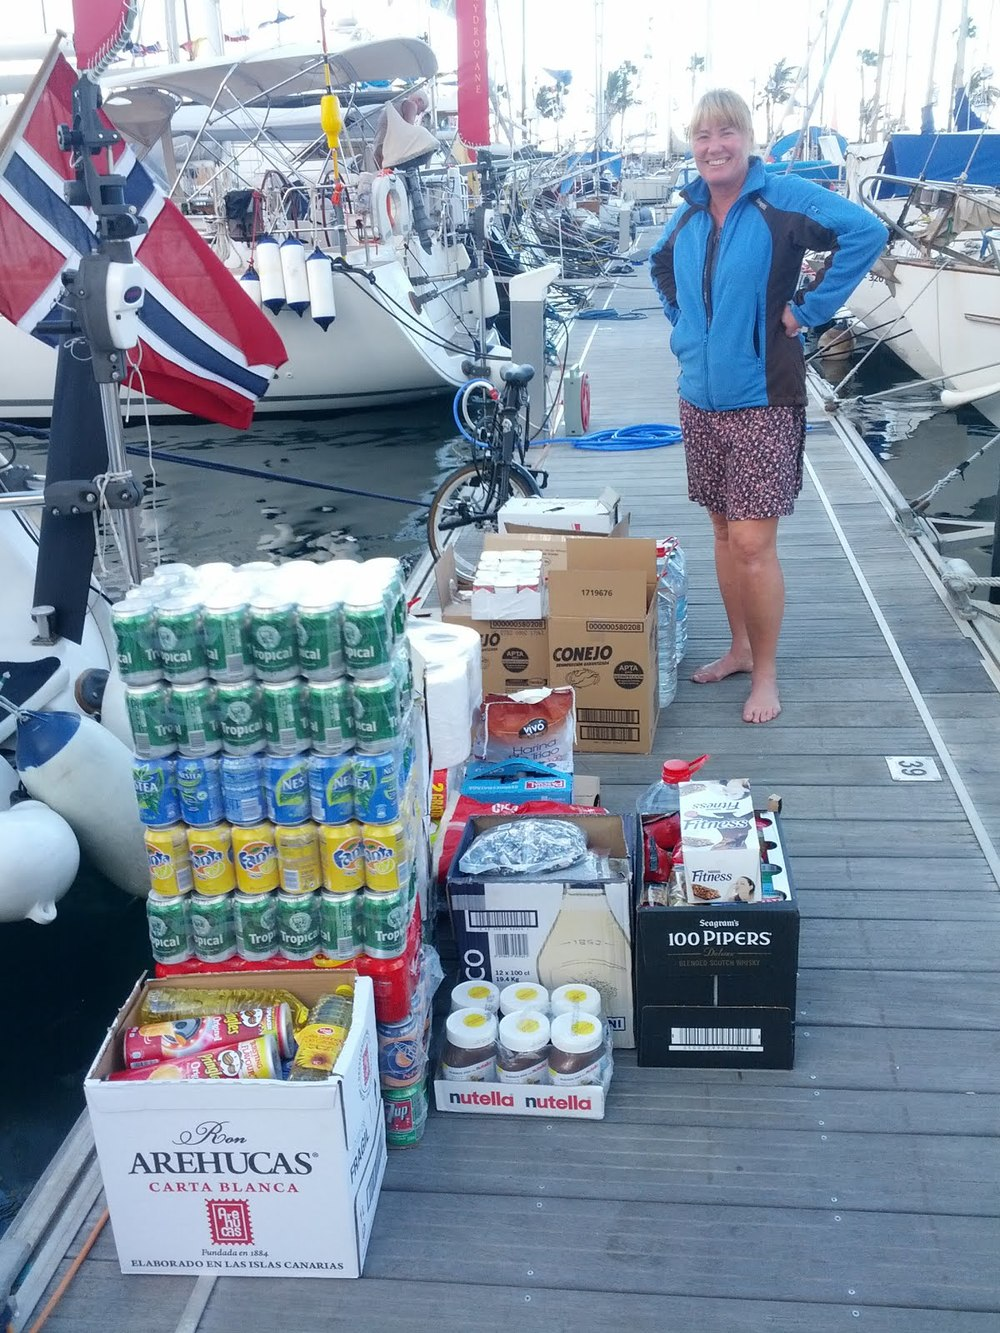 A typical dockside scene when provisioning for an ocean crossing.